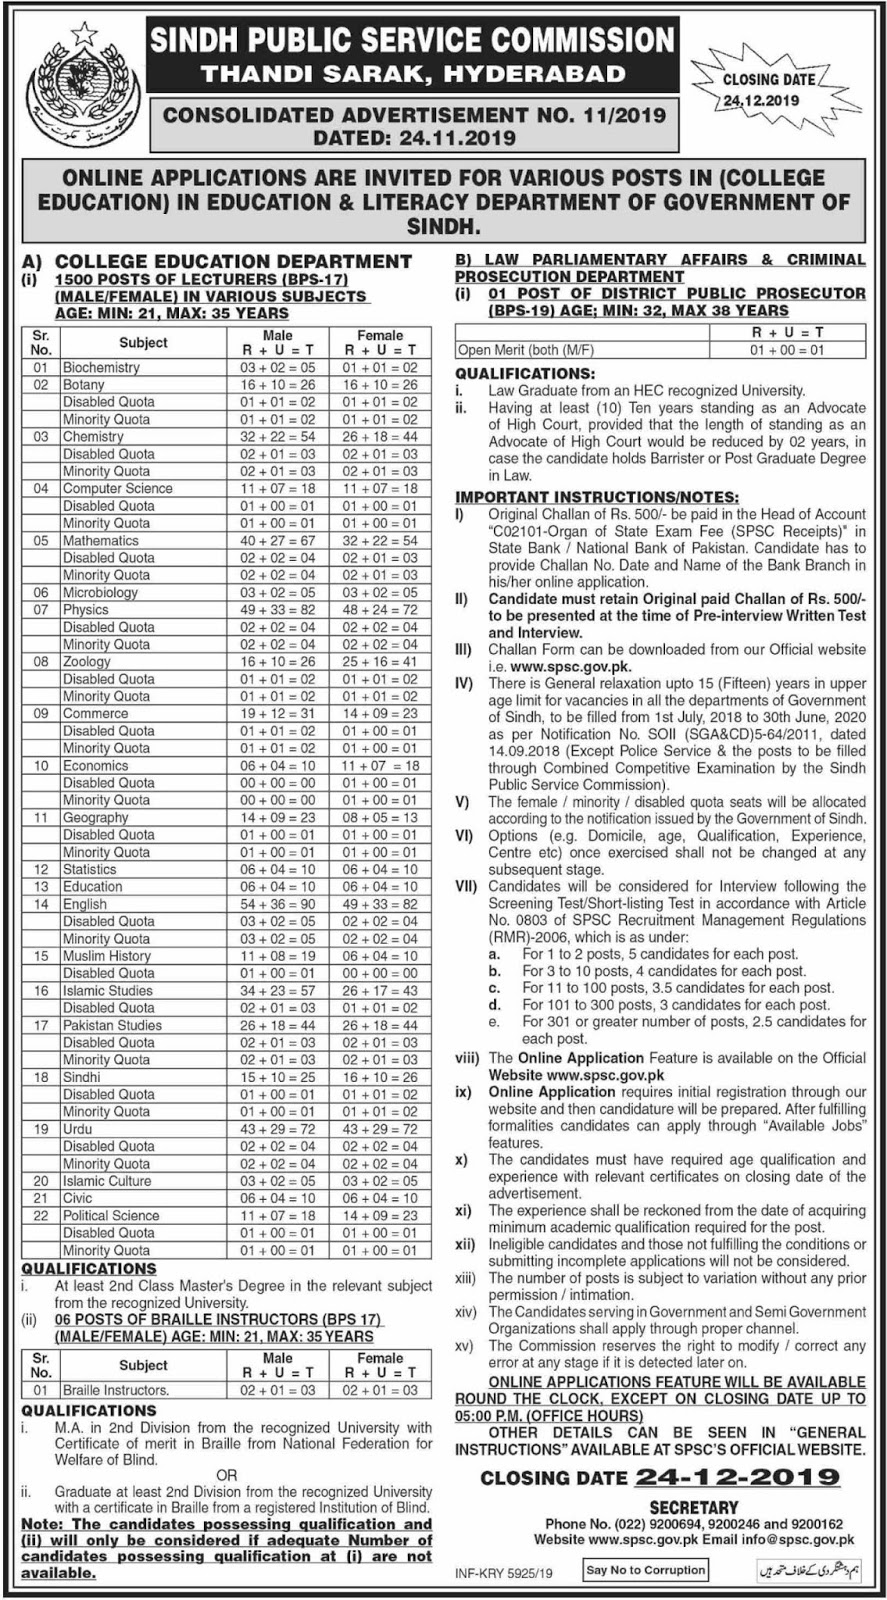 SPSC College Lecturer Jobs 1500 Posts (BPS-17) Apply Online